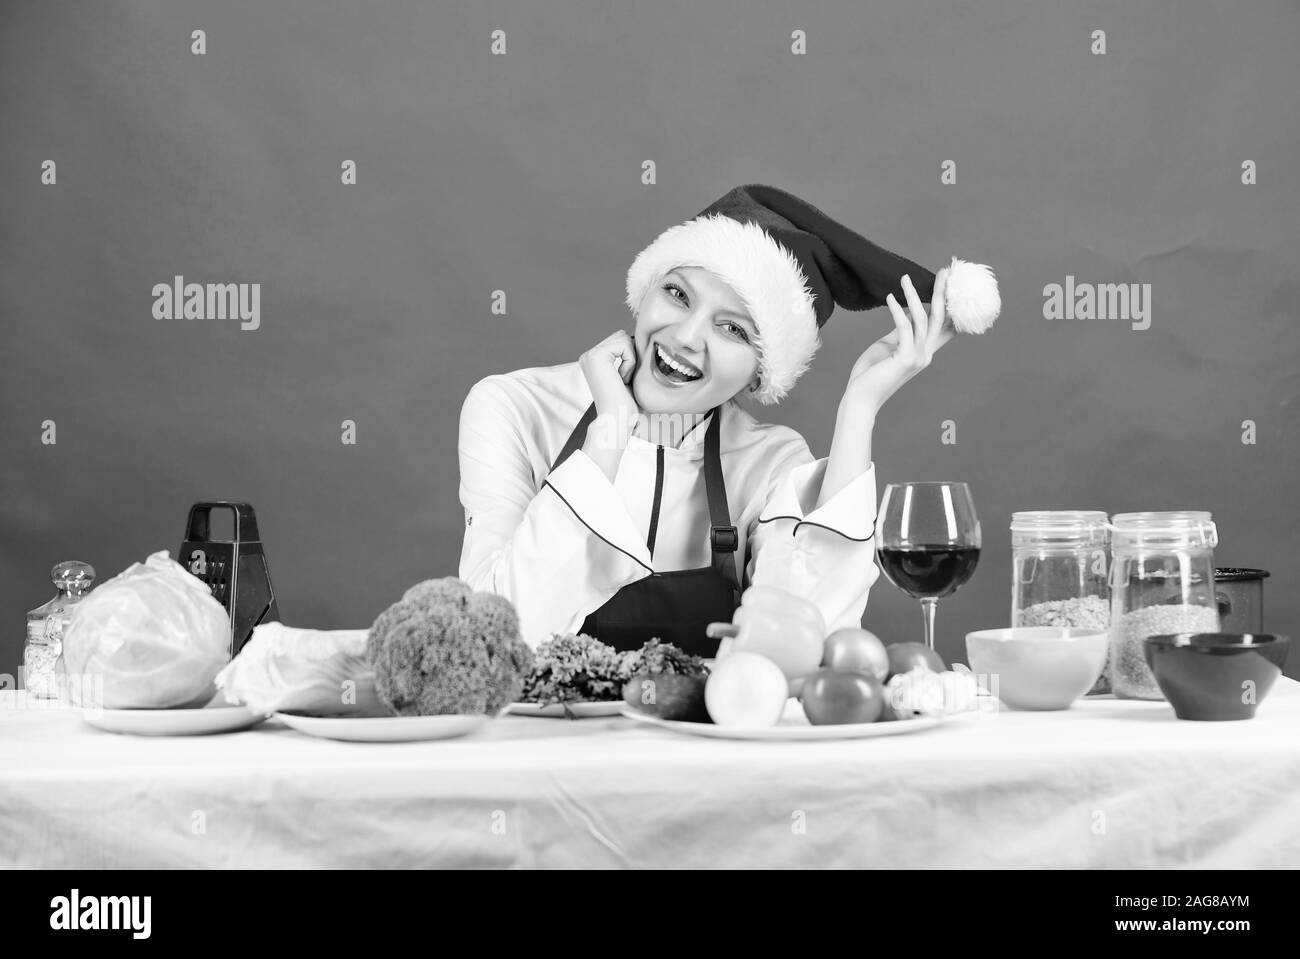 Family Christmas Dinner High Resolution Stock Photography And Images Alamy